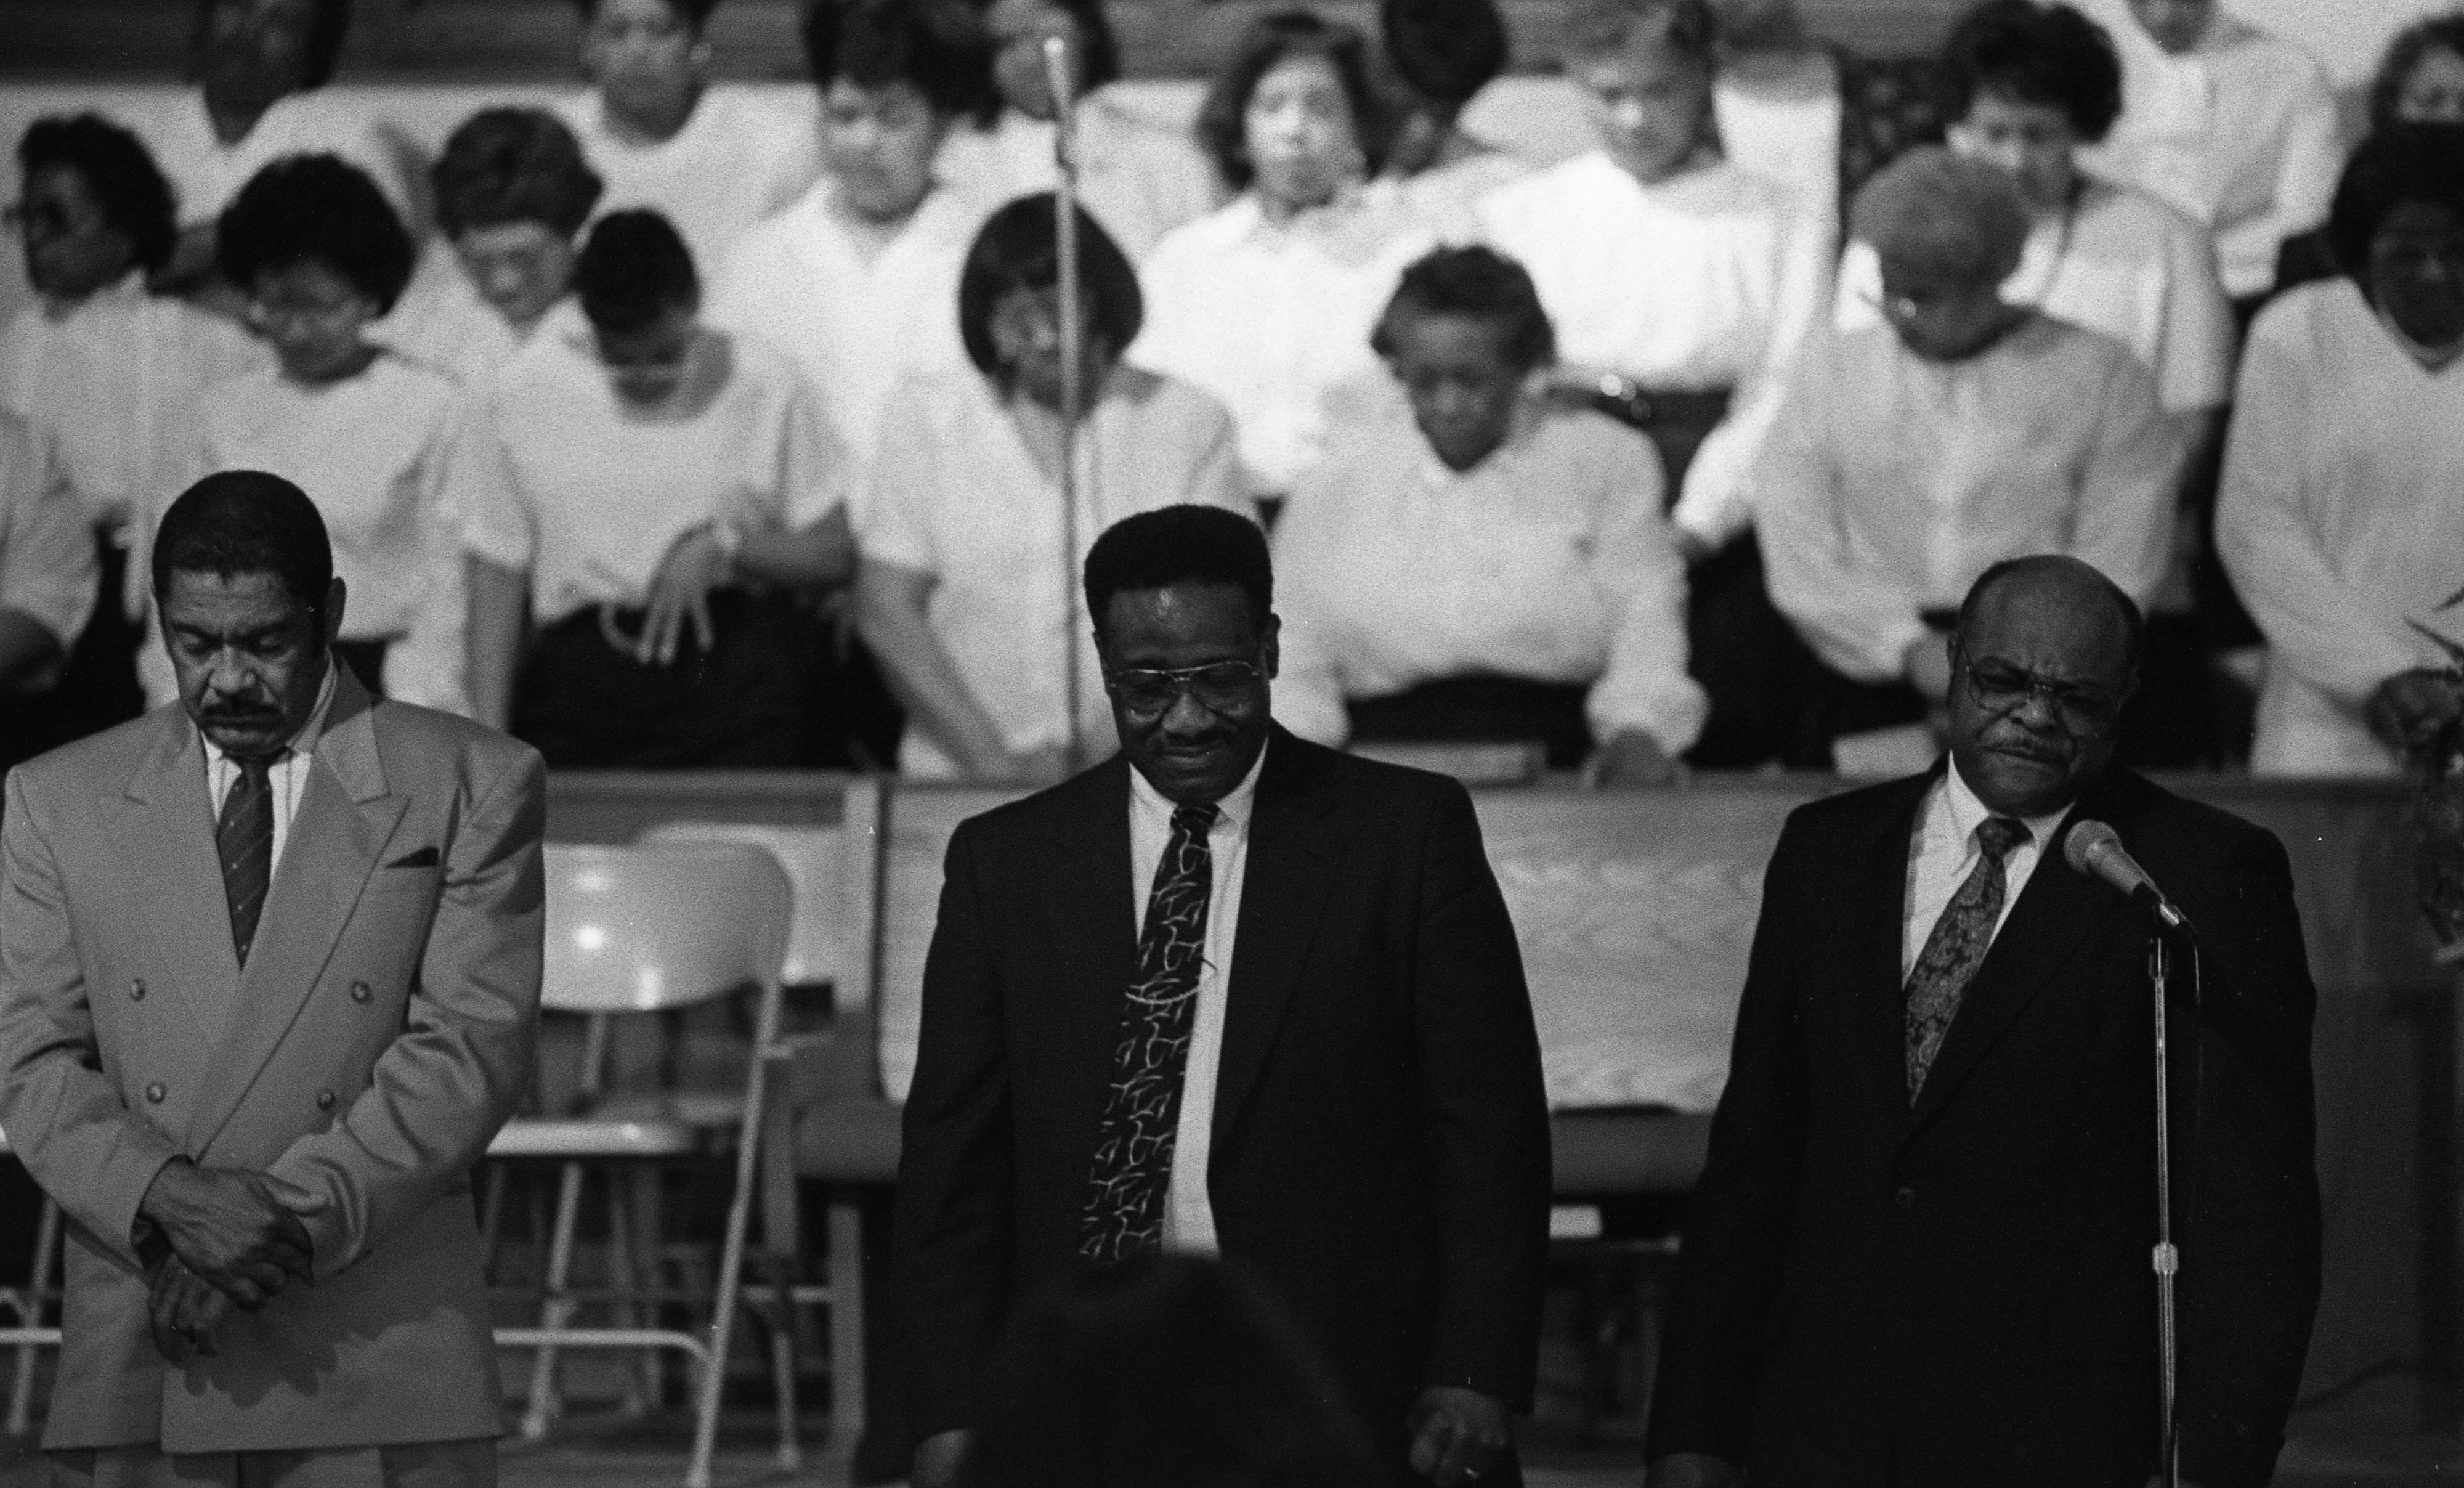 Rehearsal for 10th Annual Community Revival at Second Baptist Church, April 1992 image